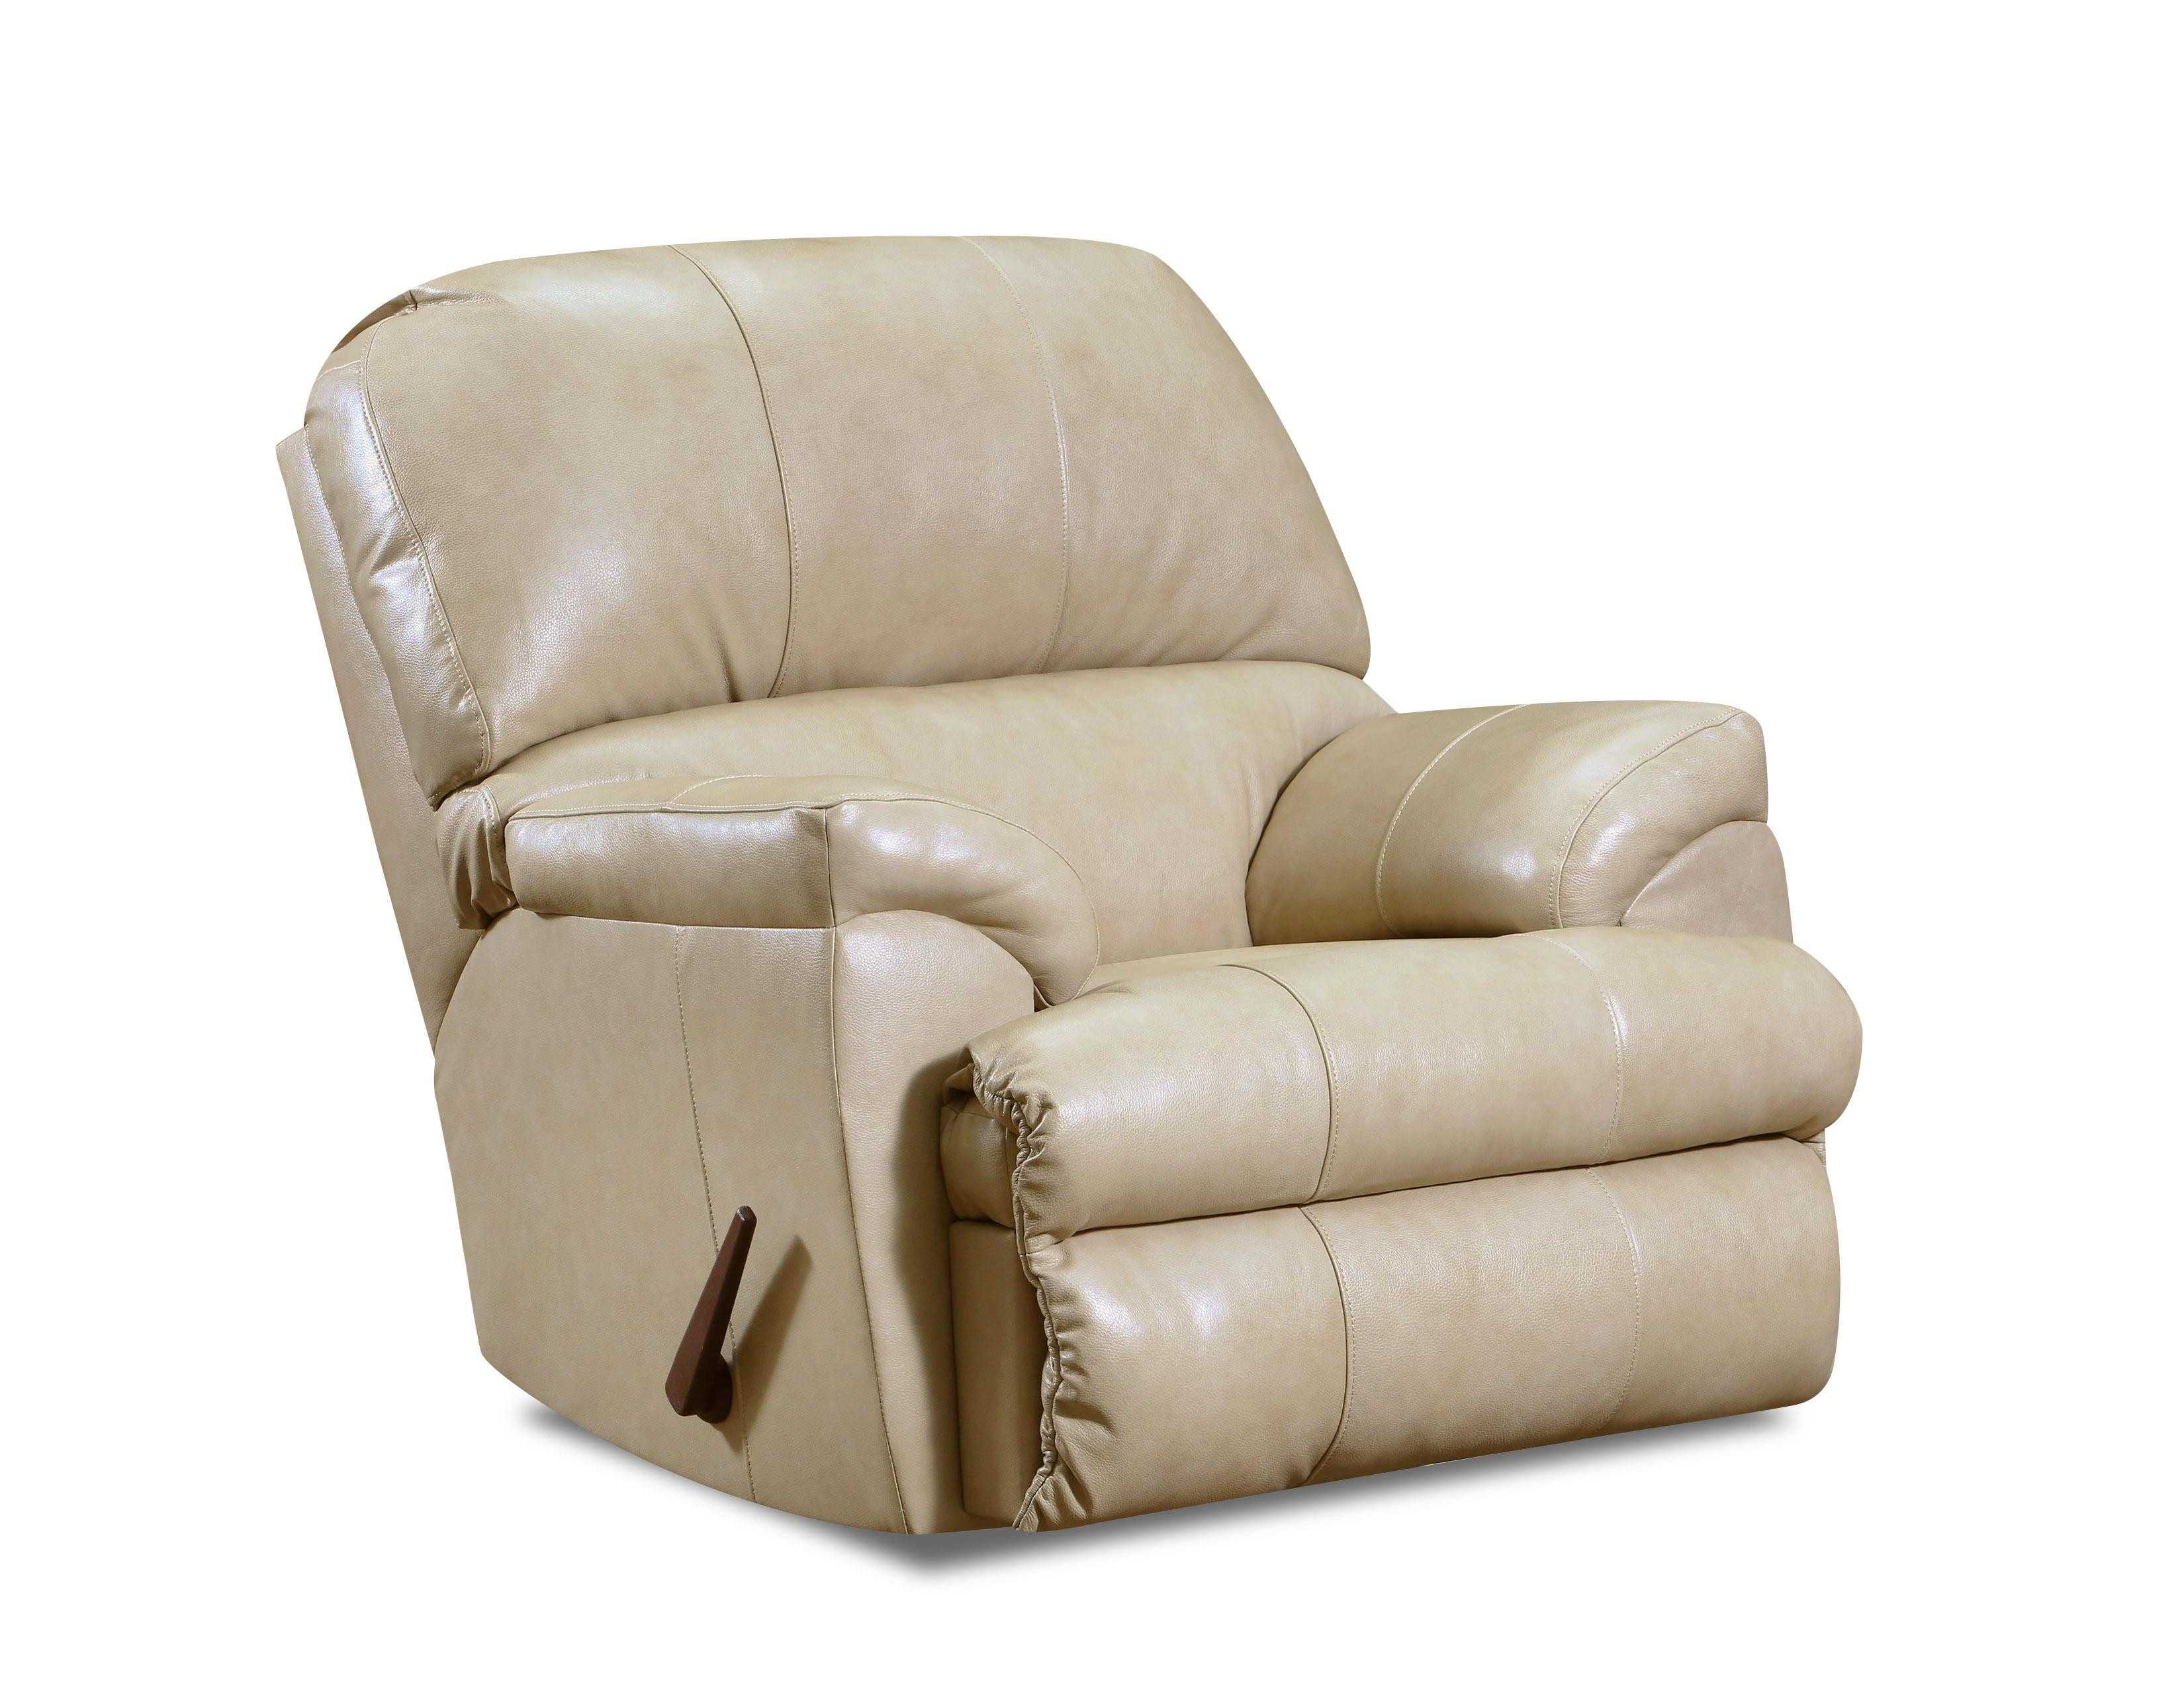 14010 LEATHER Touch Recliner in Soft Touch Putty $779.99